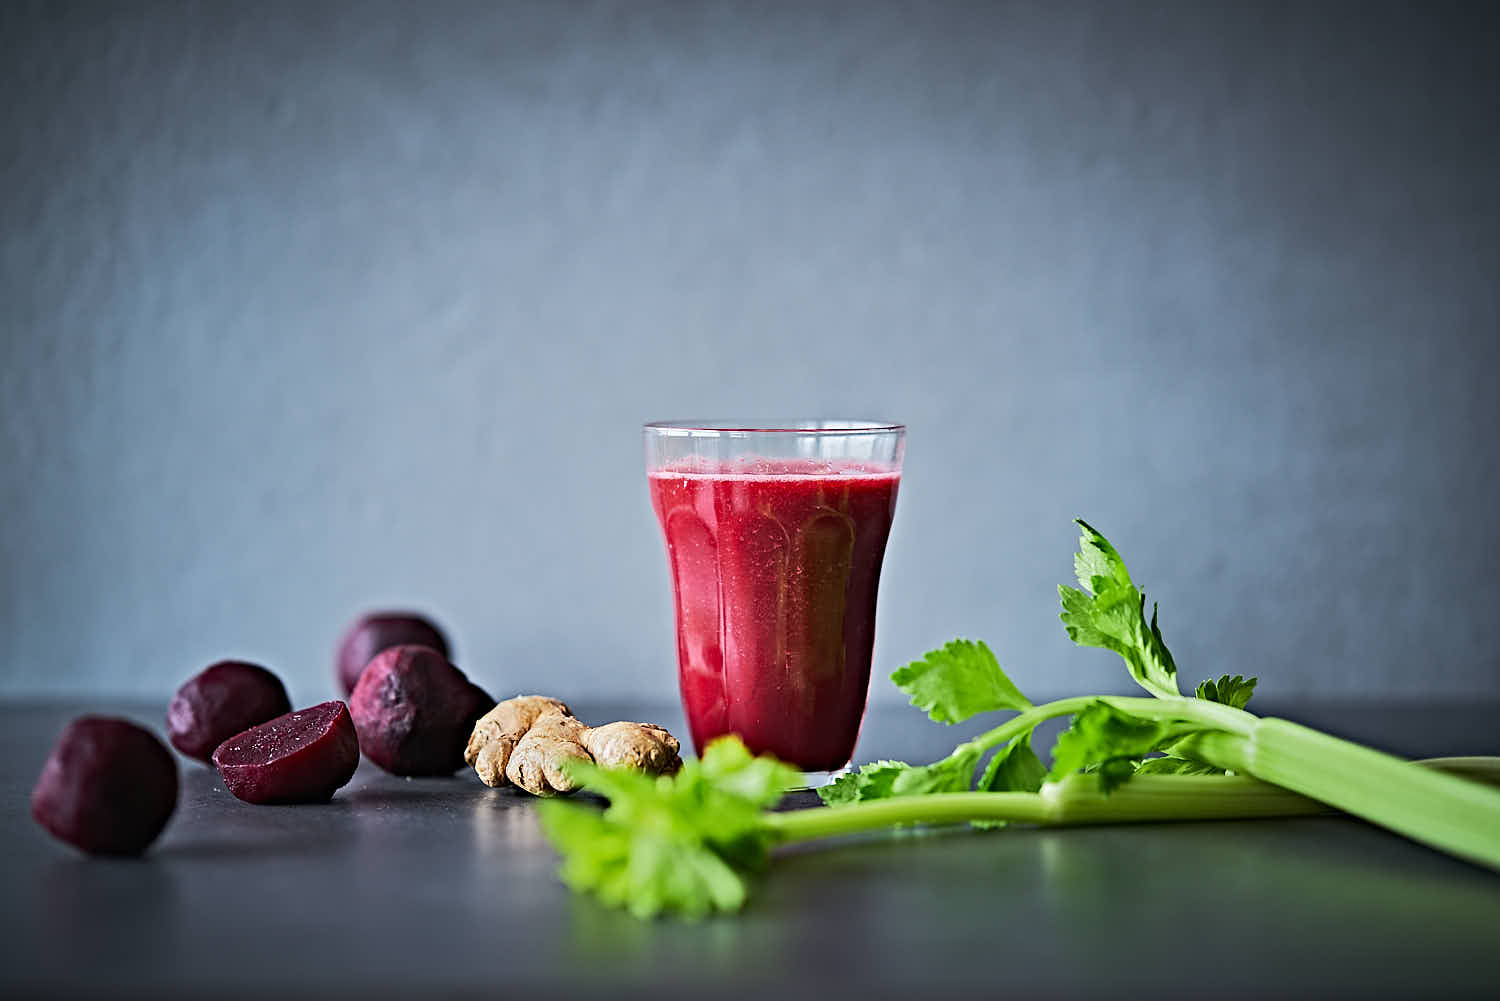 Rote Beete-Maracuja-Smoothie